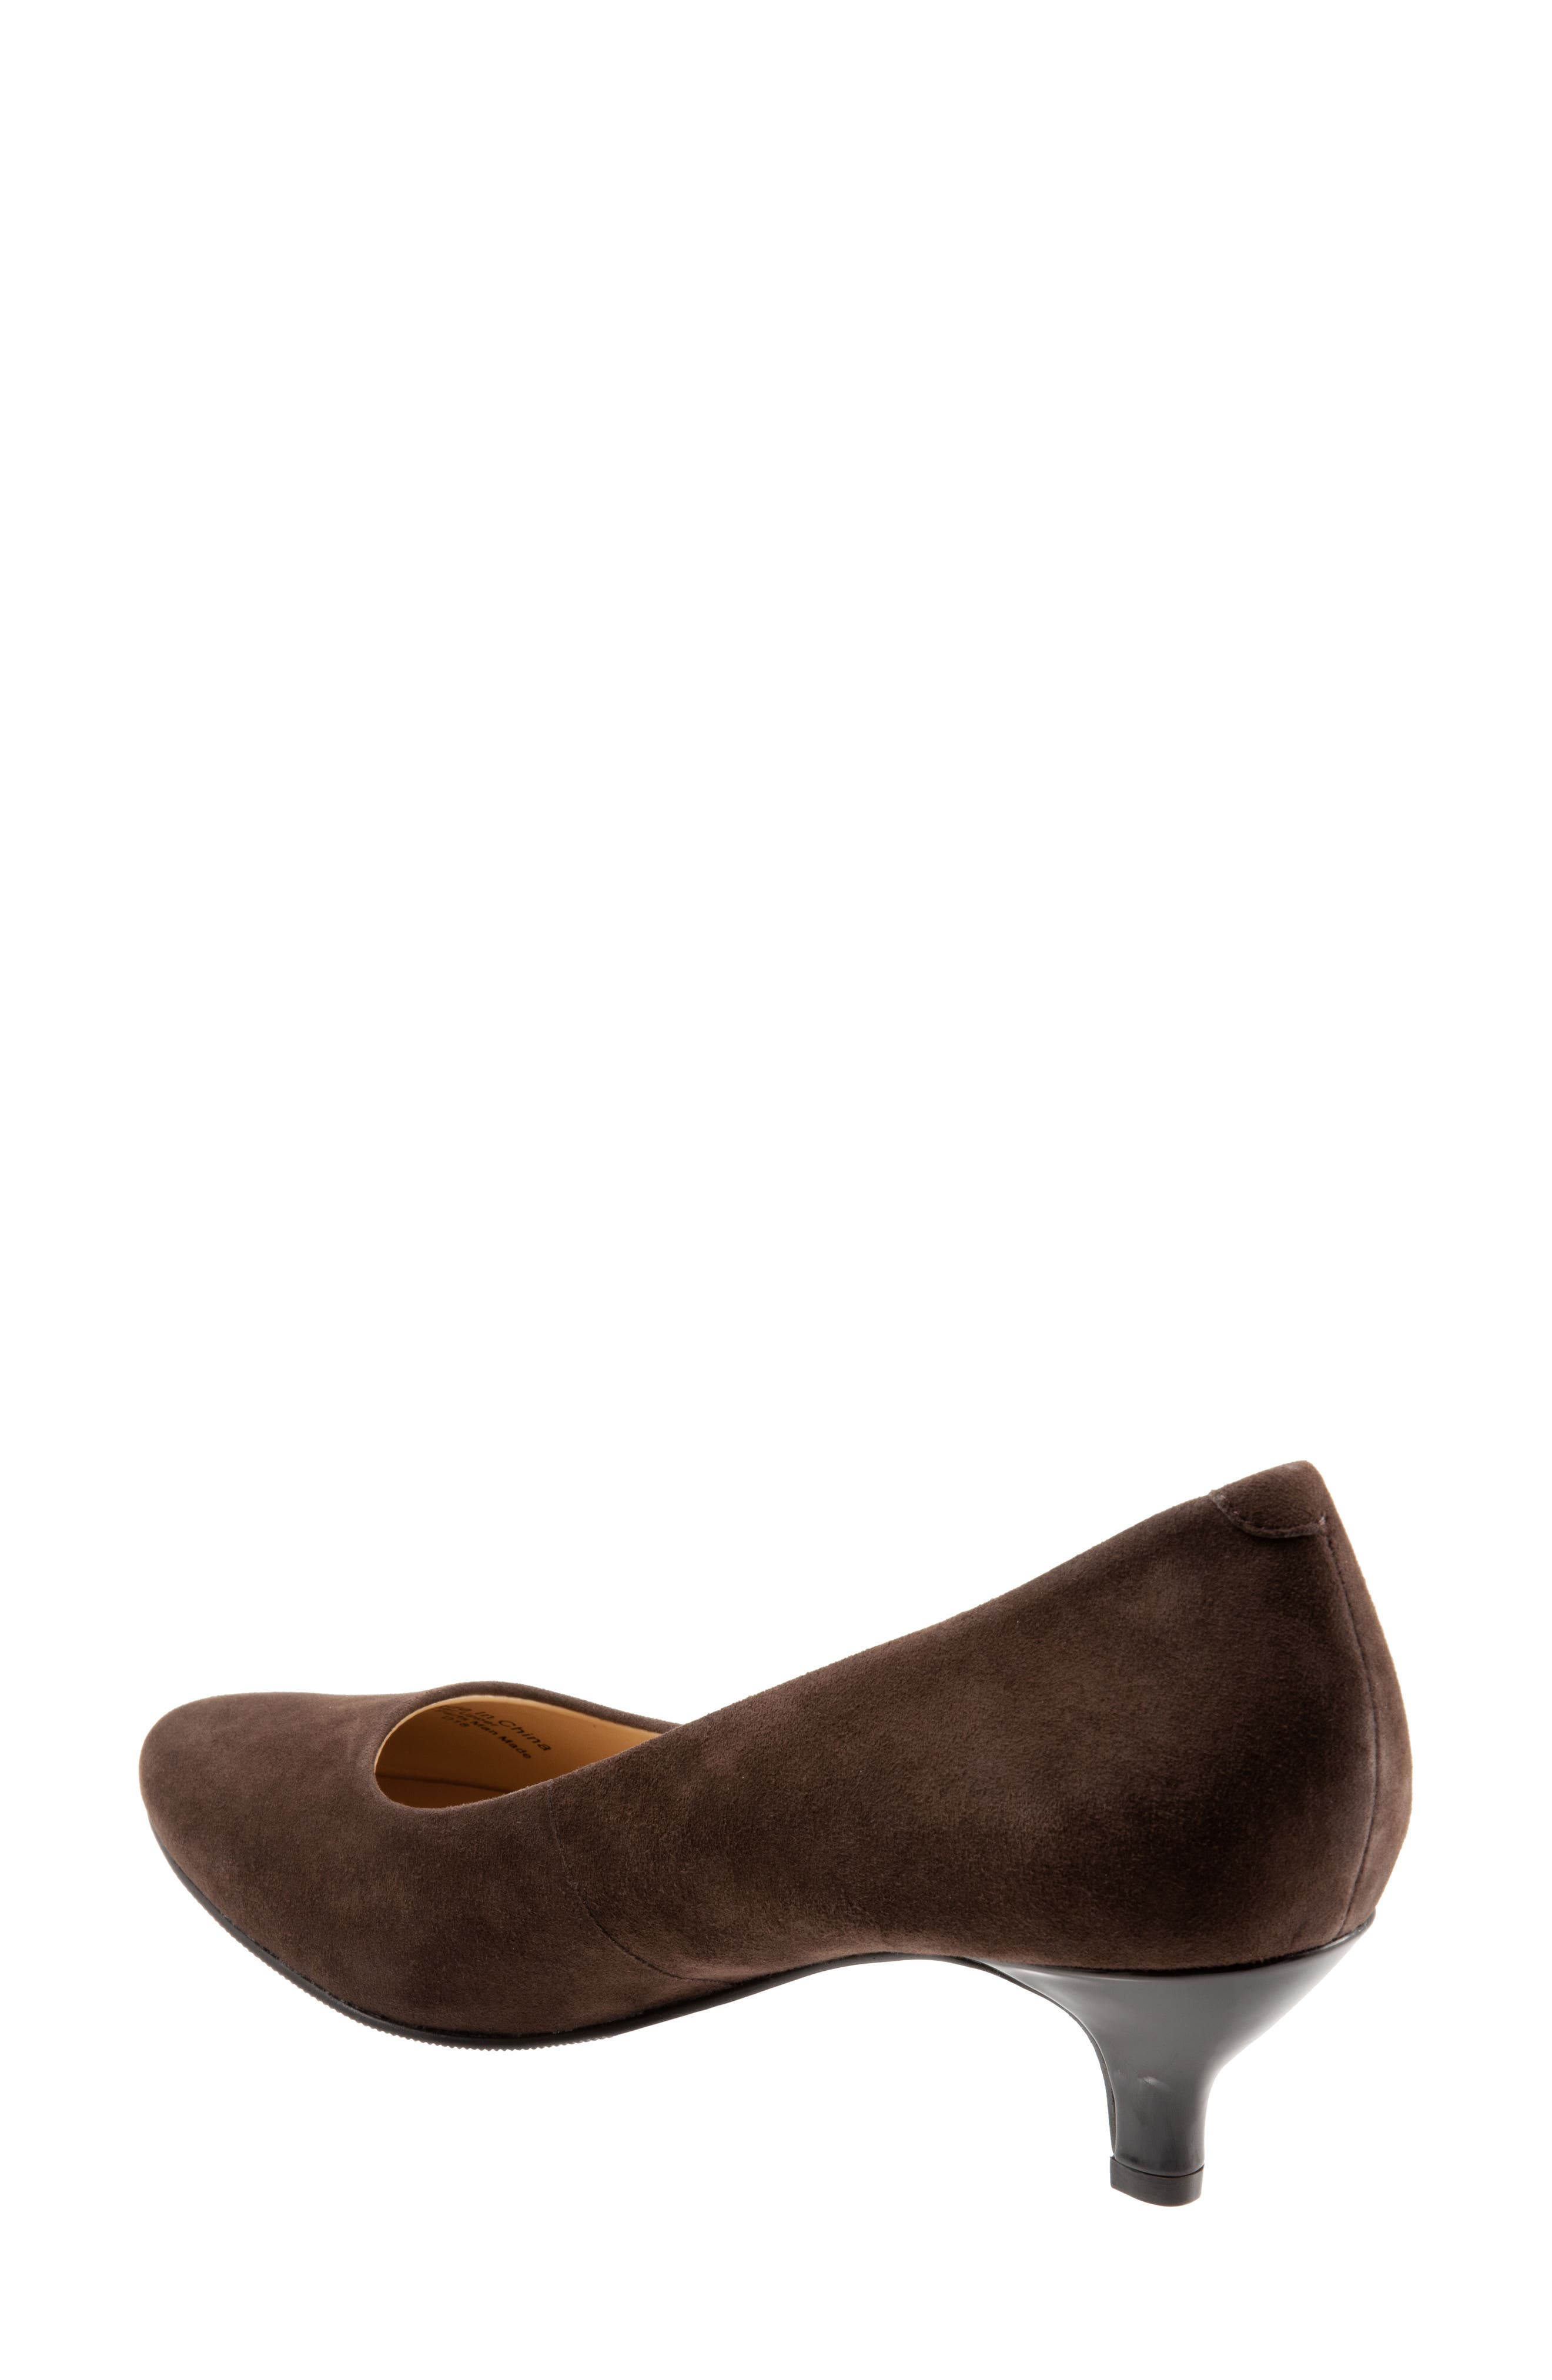 TROTTERS, Kiera Pump, Alternate thumbnail 2, color, DARK BROWN SUEDE